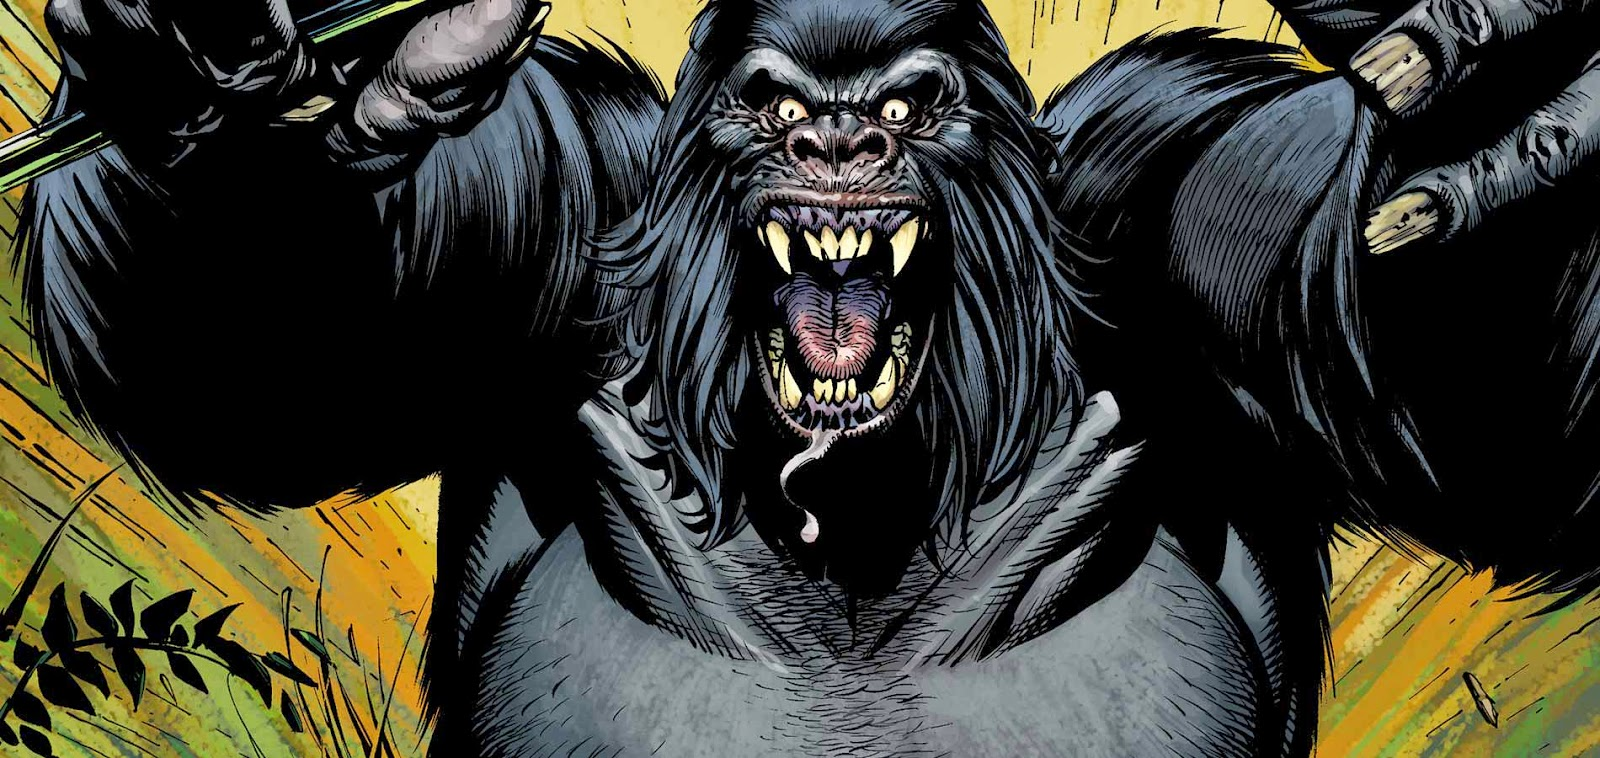 Gorilla Grodd. The Flash